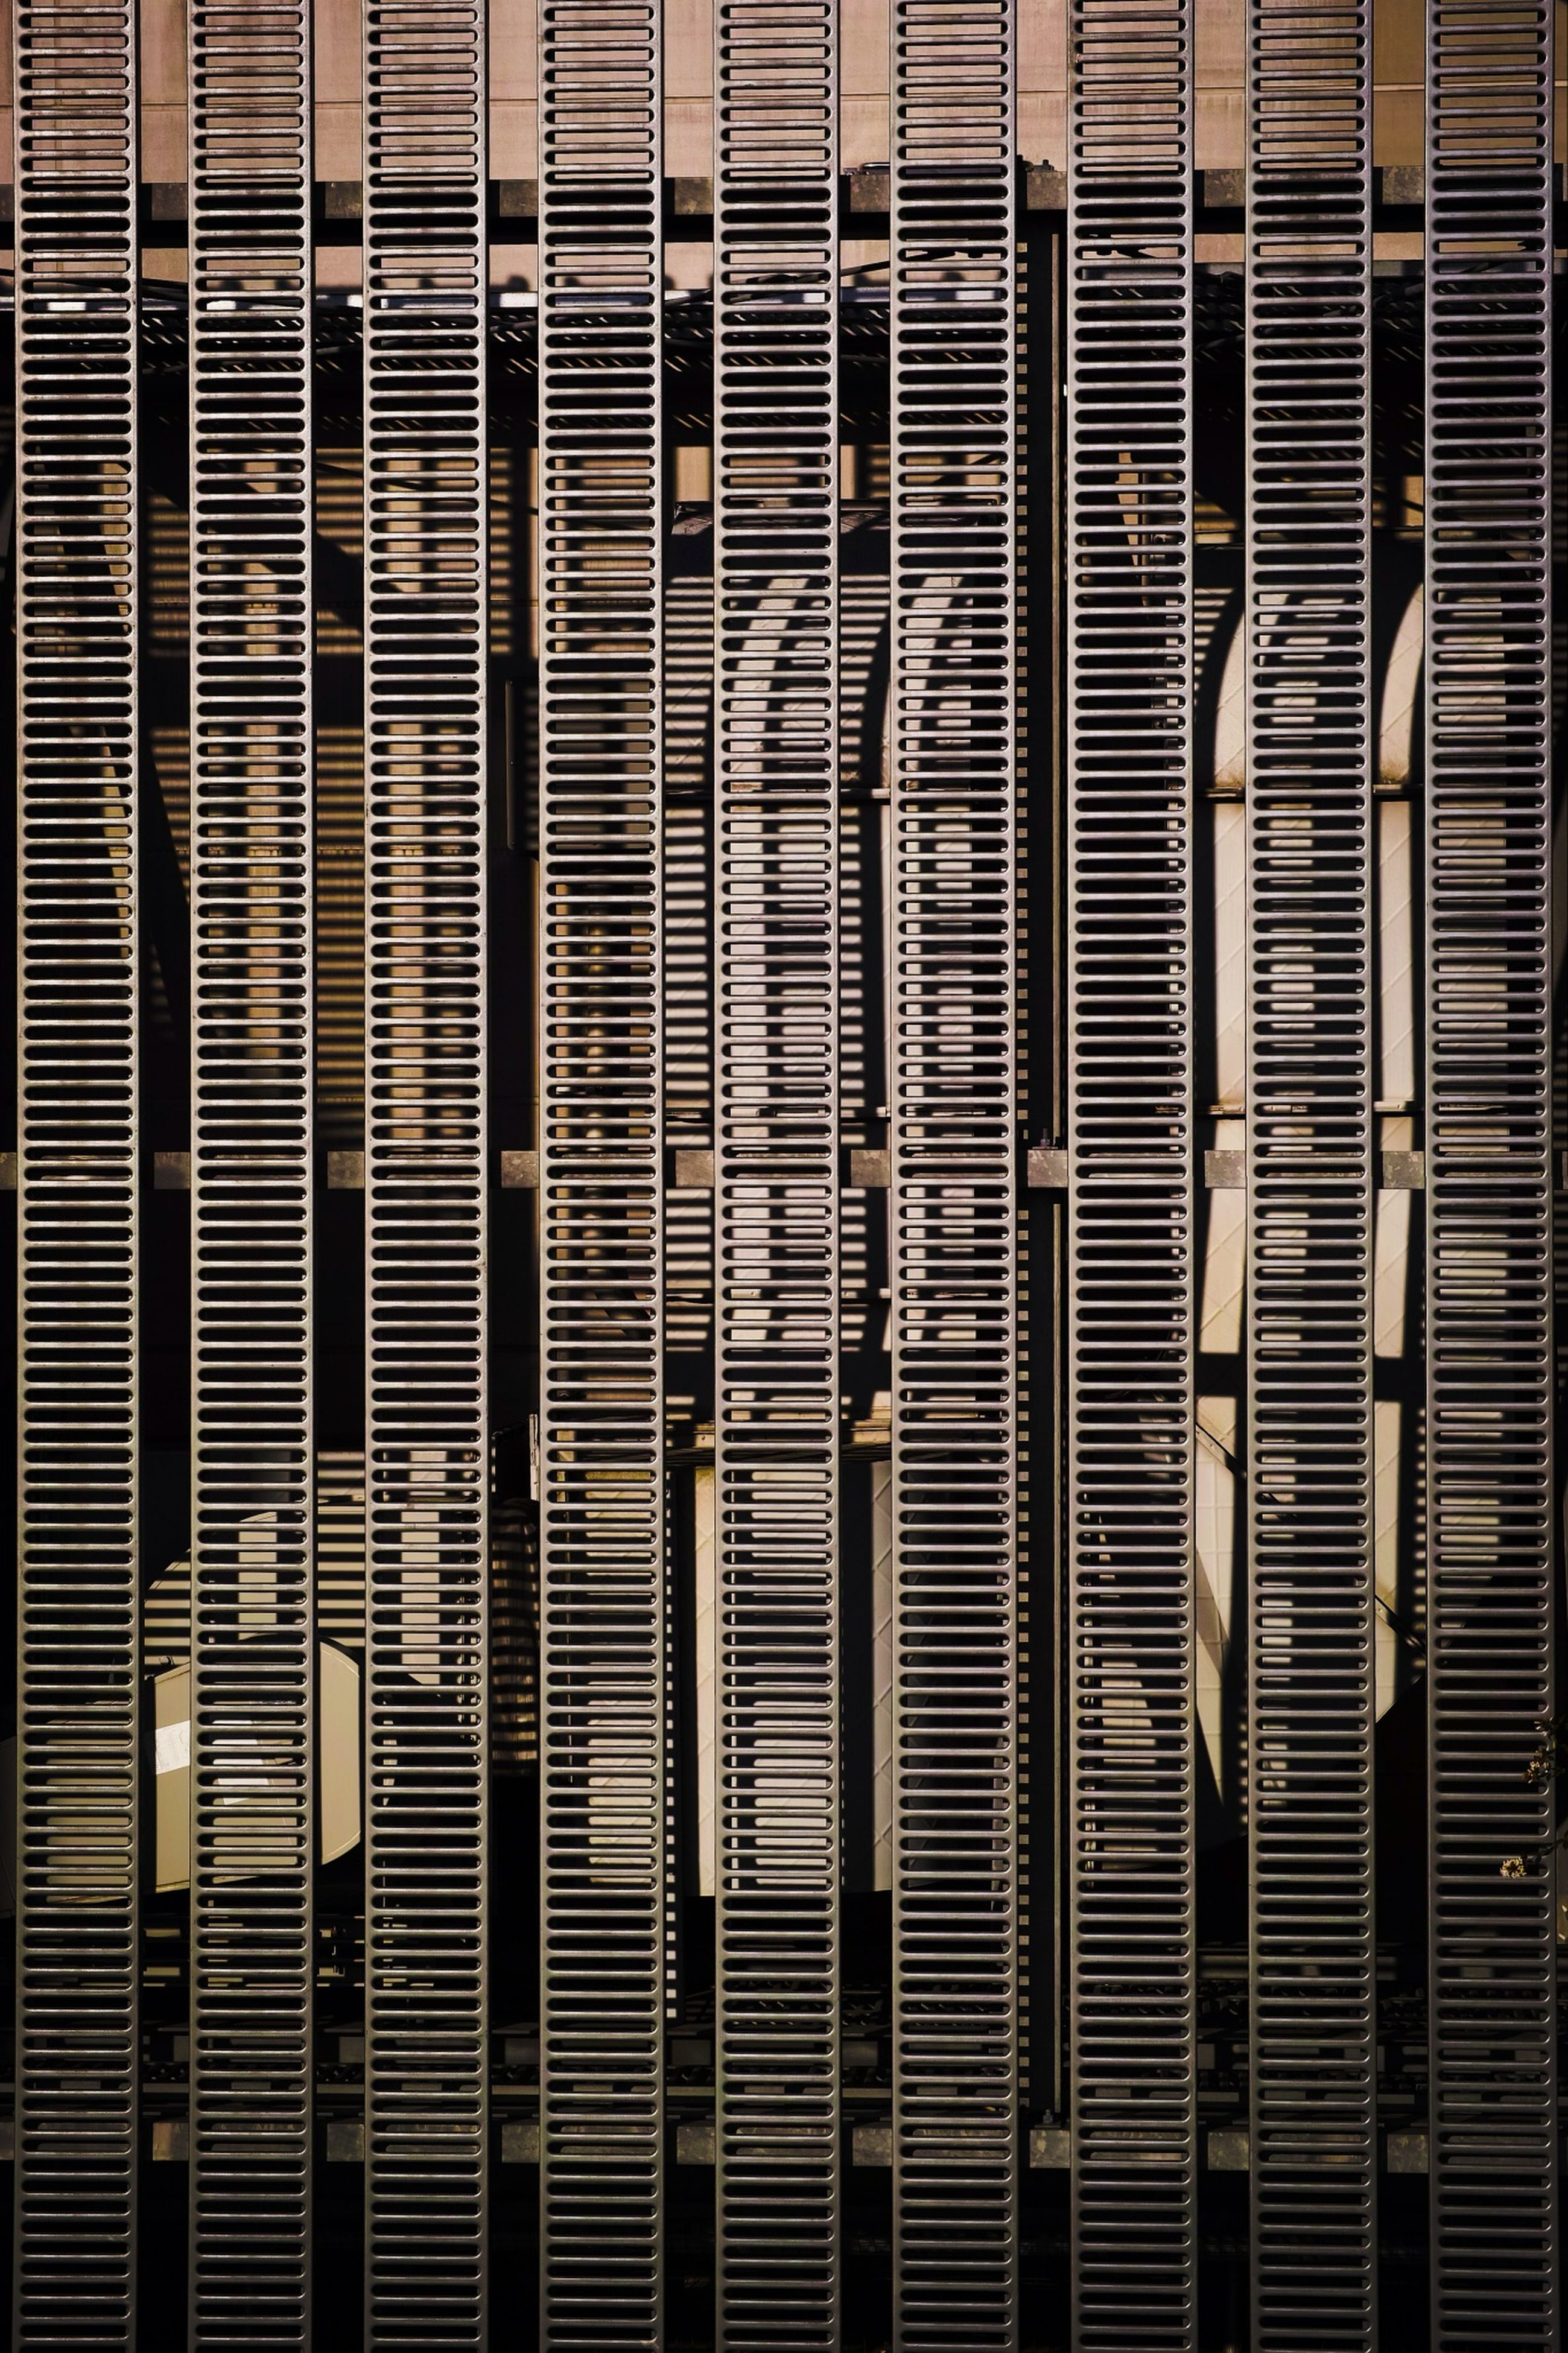 full frame, backgrounds, pattern, built structure, architecture, window, textured, blinds, building exterior, wall - building feature, close-up, repetition, no people, design, brick wall, wall, day, indoors, protection